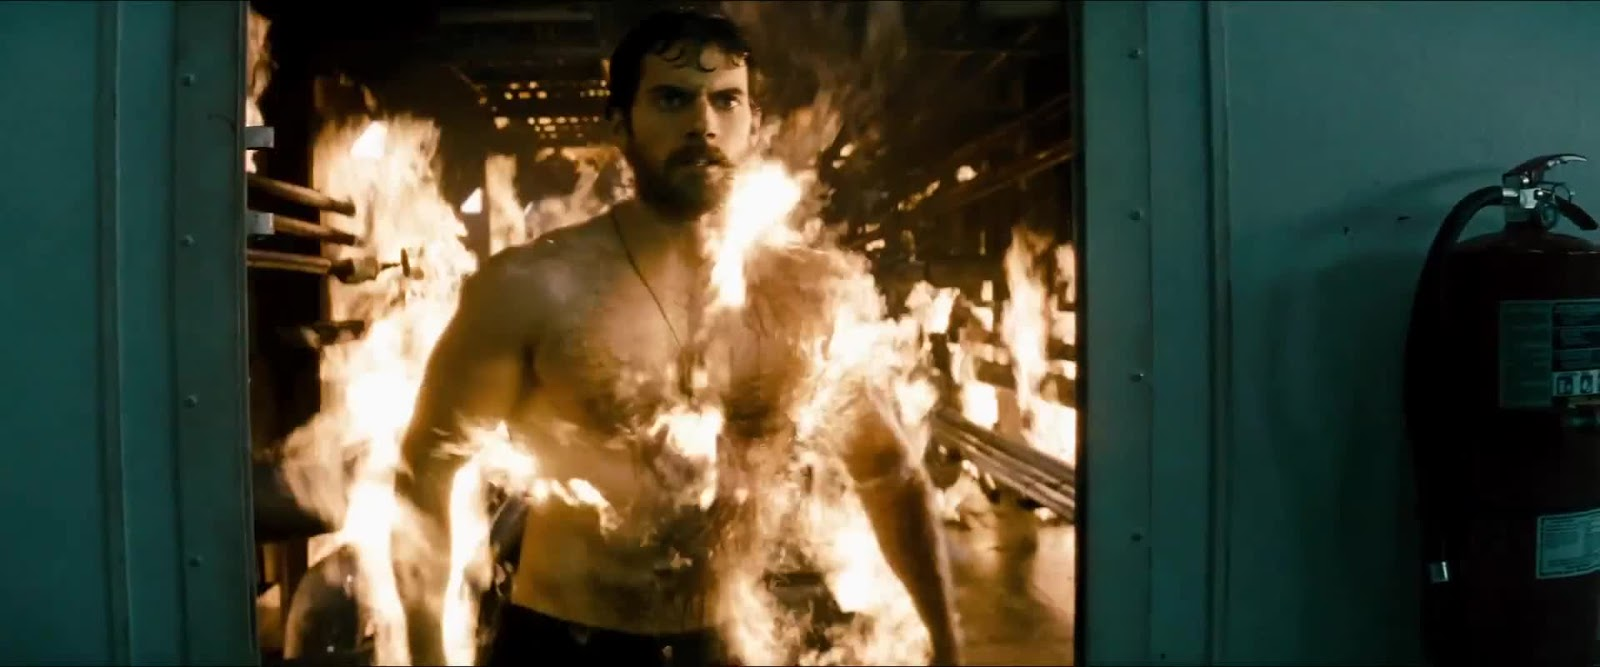 Shirtless Henry Cavill fire scene Man of Steel sexy